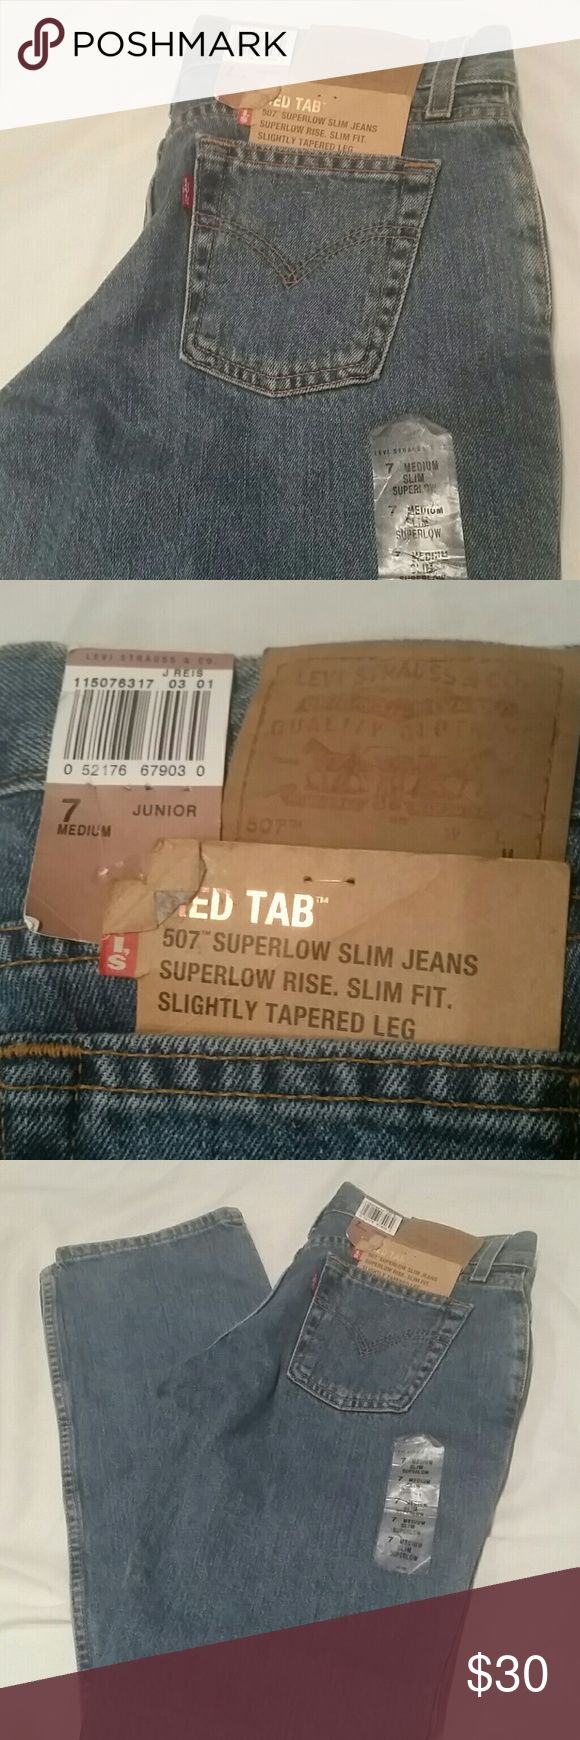 New LEVI'S 507 Super Low Slim JEANS  Sz 7 Junior New w/Tags,  507,super Low, slim, Tapered Leg,   Size 7 Junior Medium Levi's Jeans Straight Leg